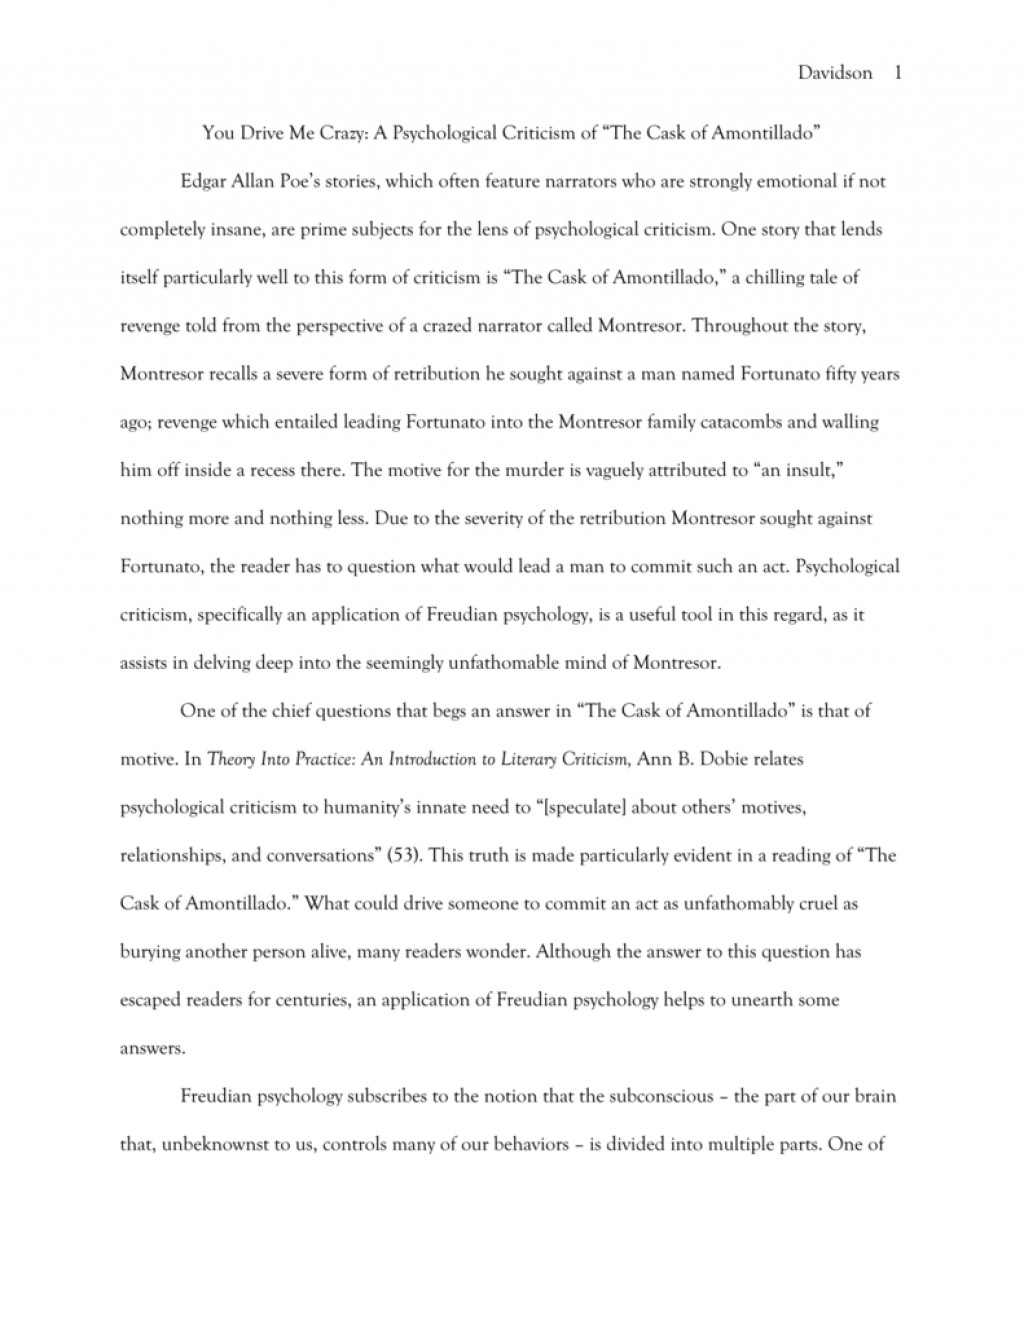 007 008304087 1 Essay Example The Cask Of Unforgettable Amontillado Topics Conclusion Large